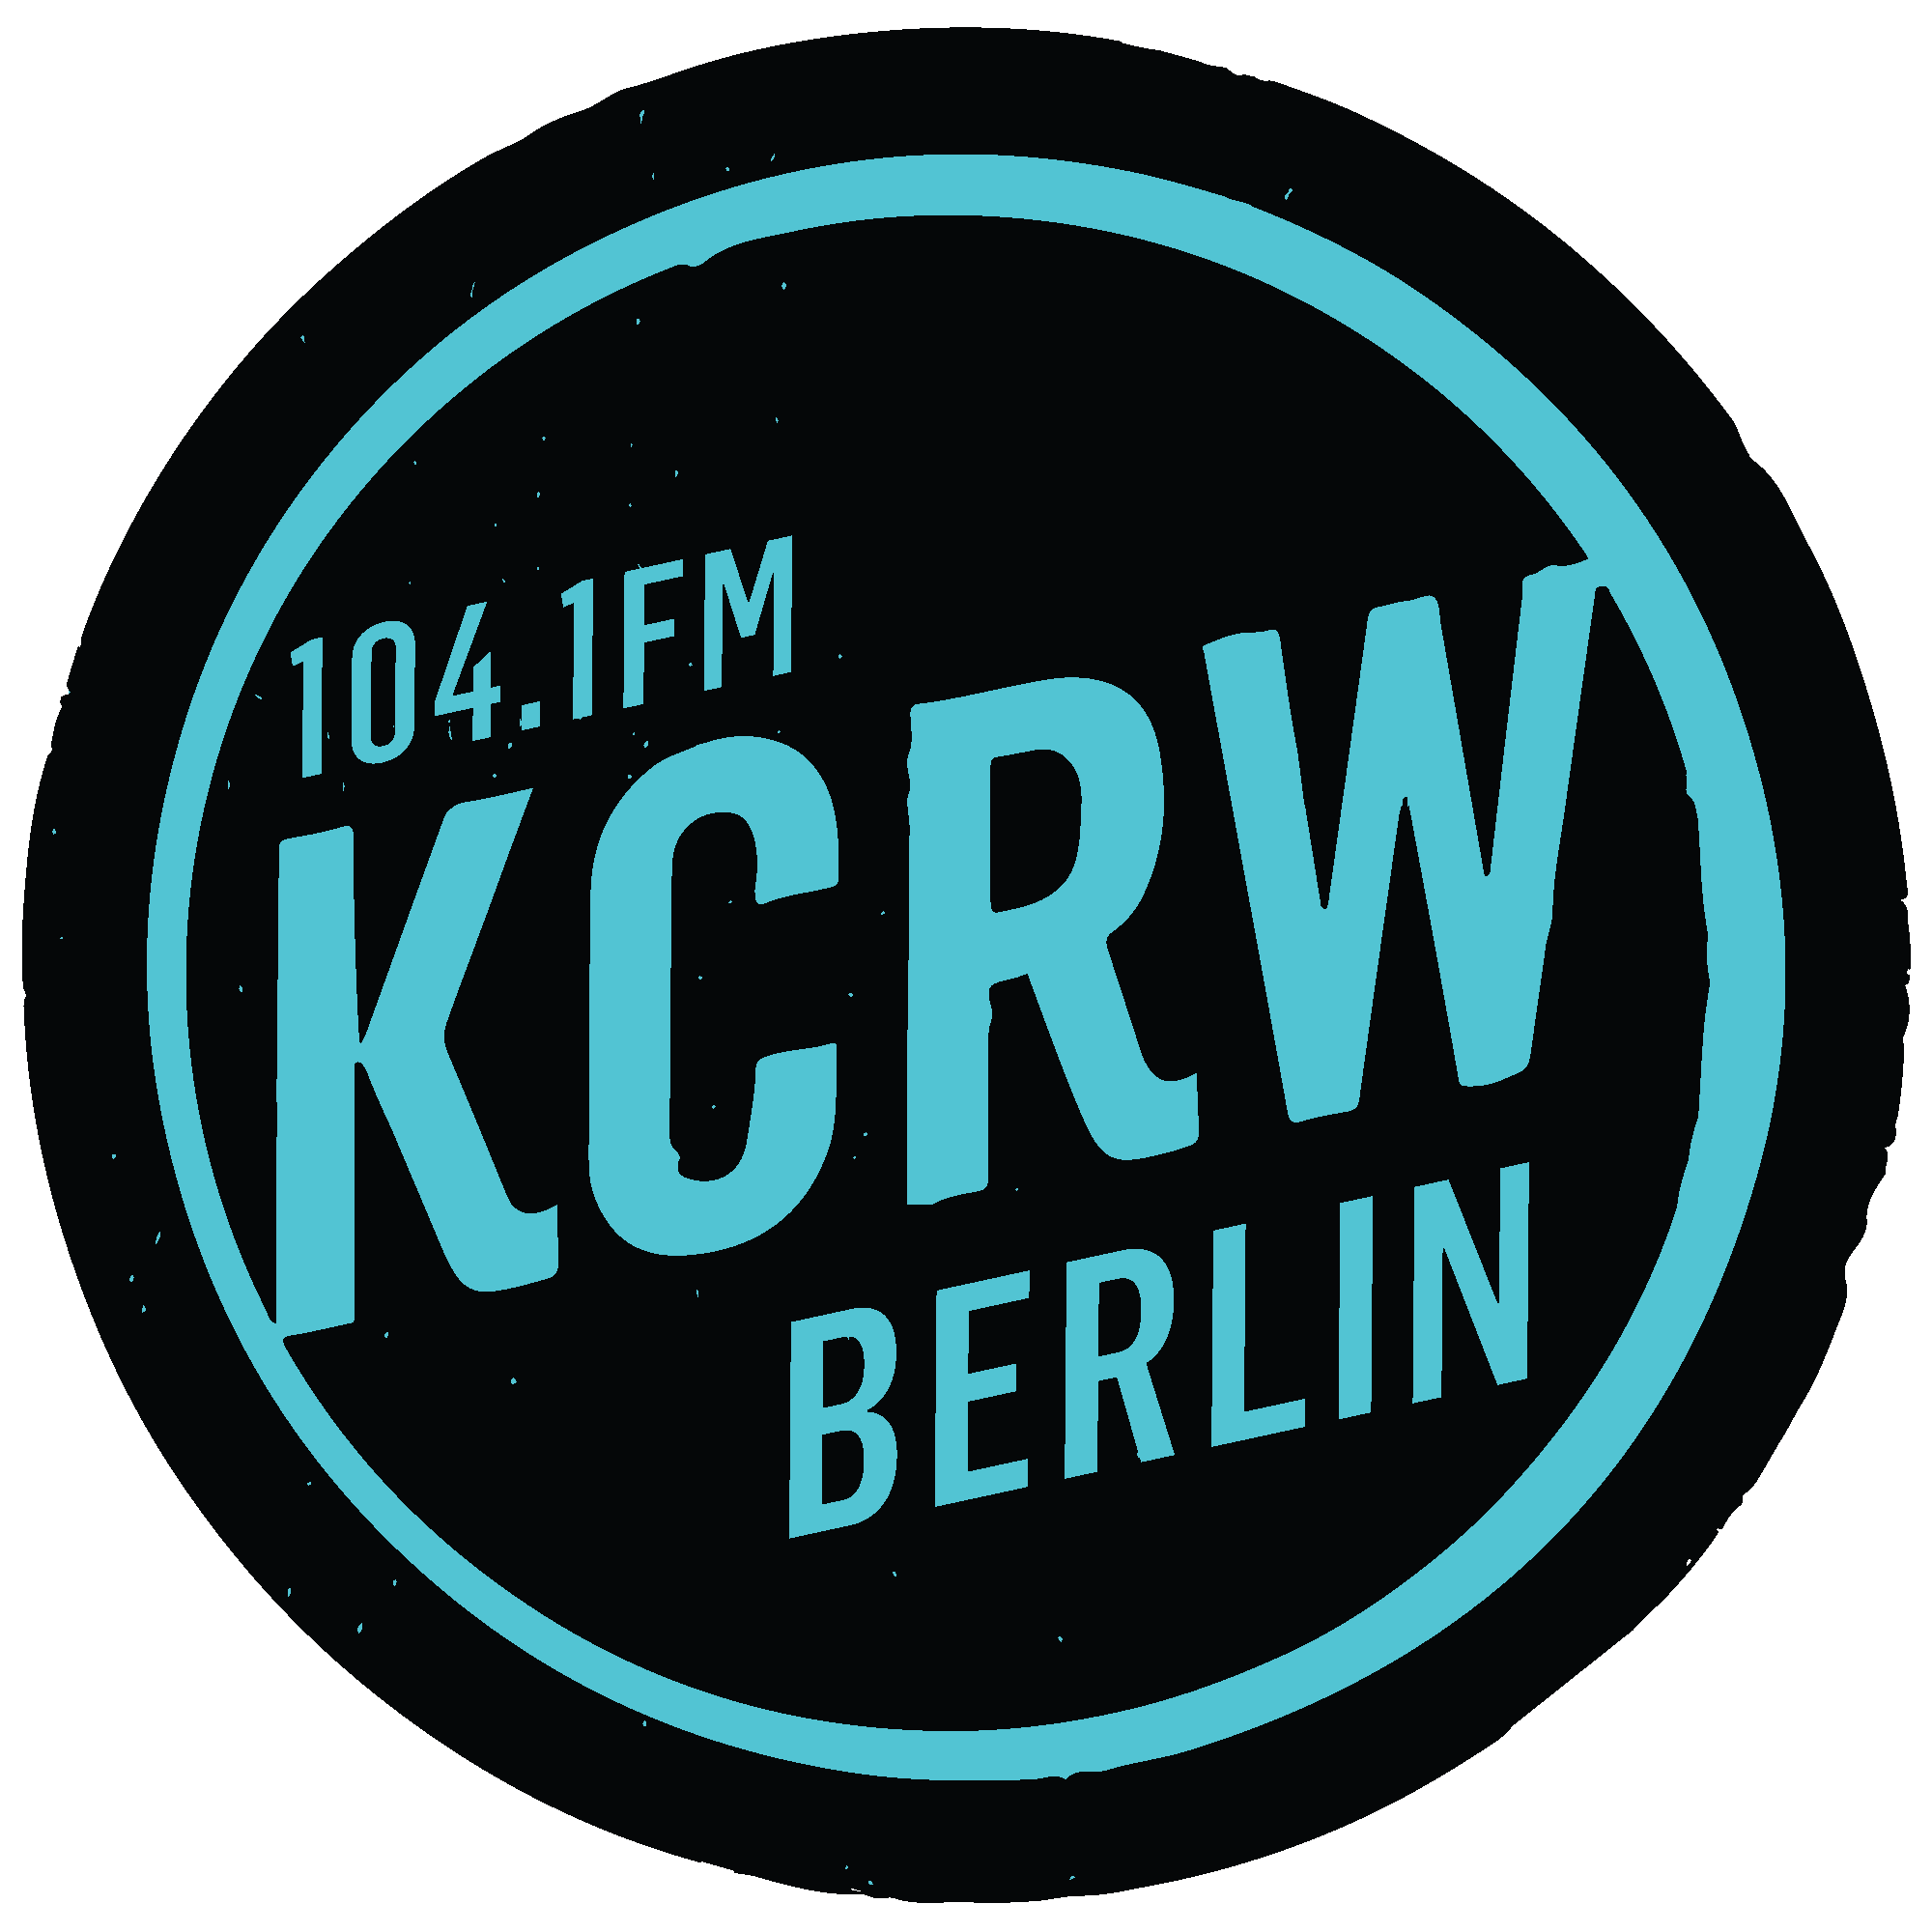 KCRW_blue.png